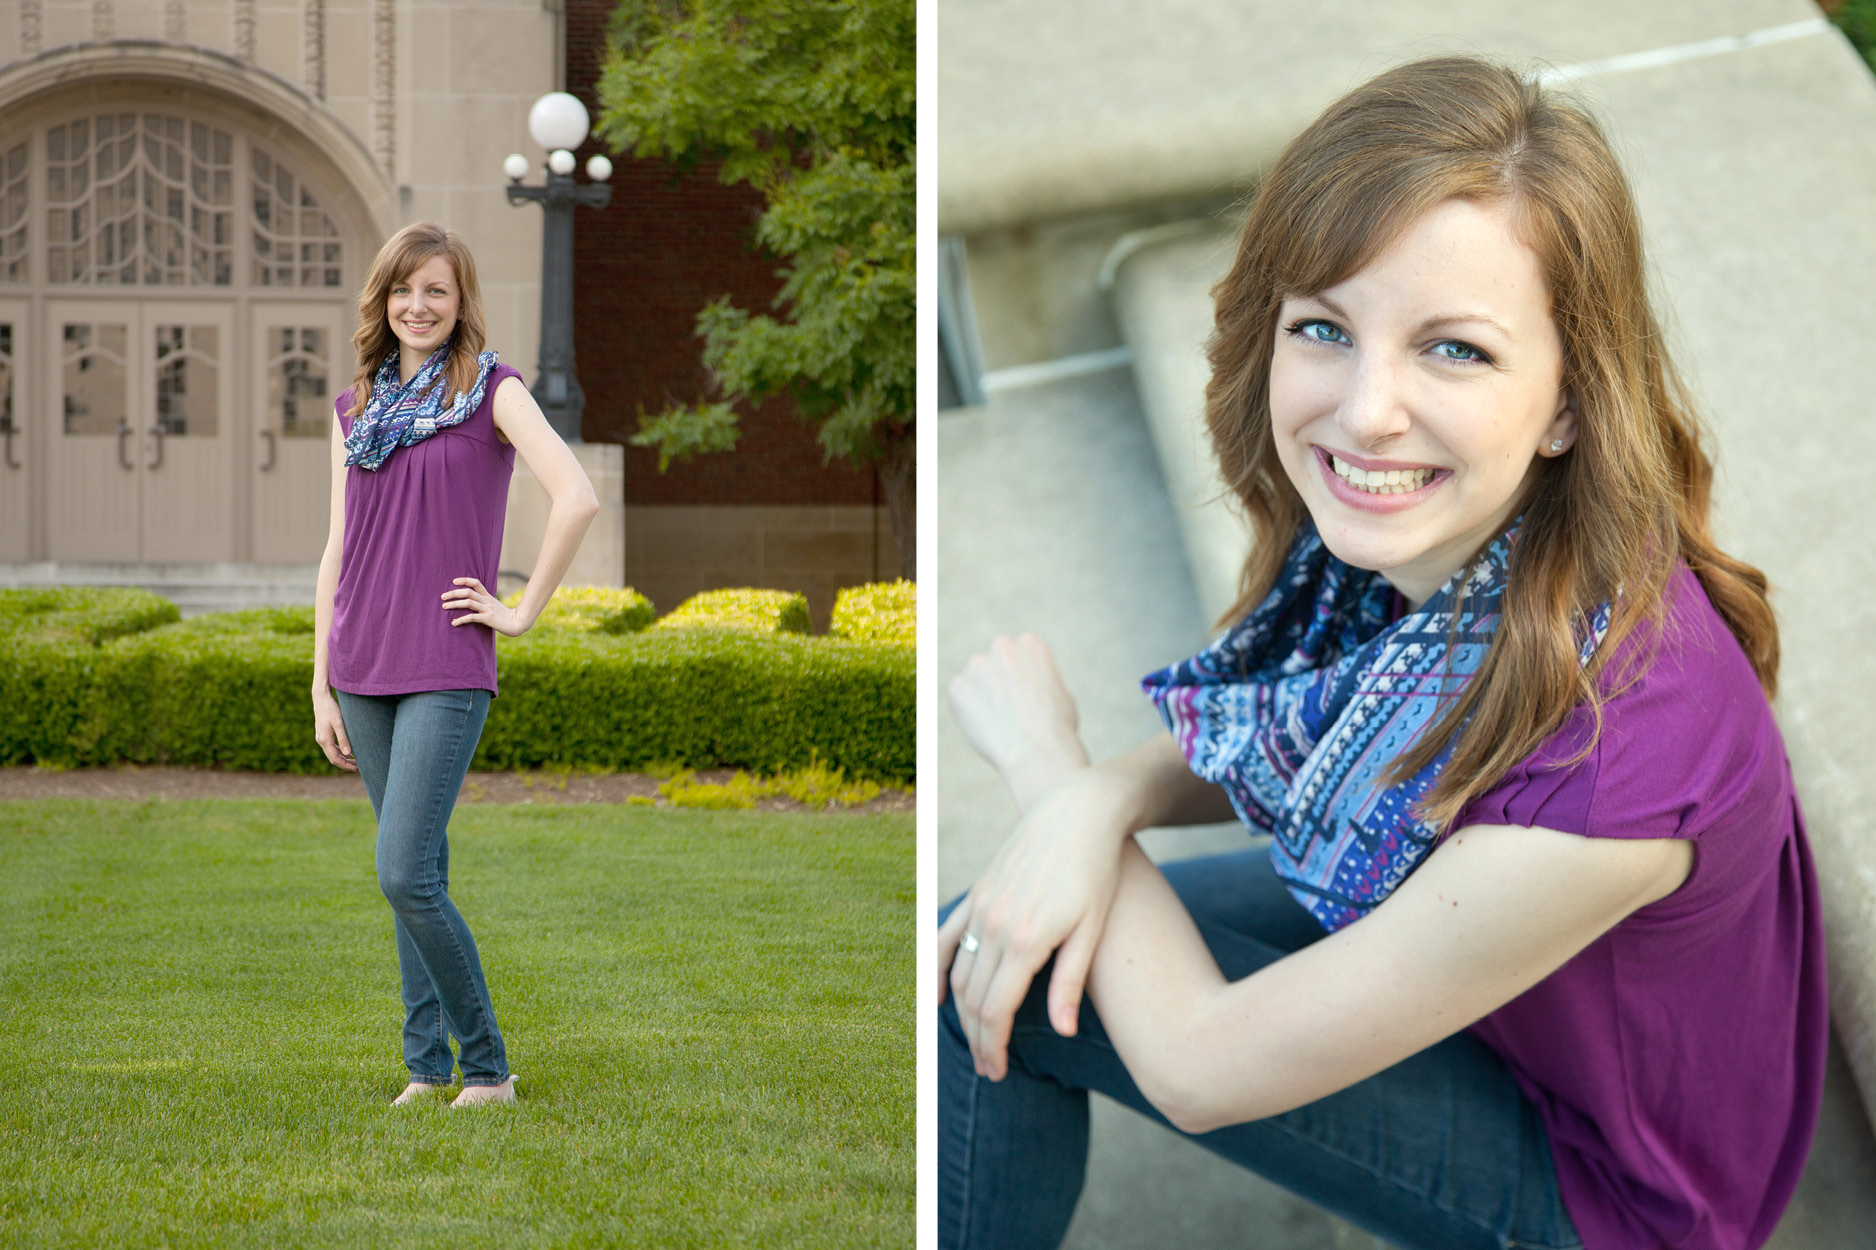 Purdue University Senior Photographer